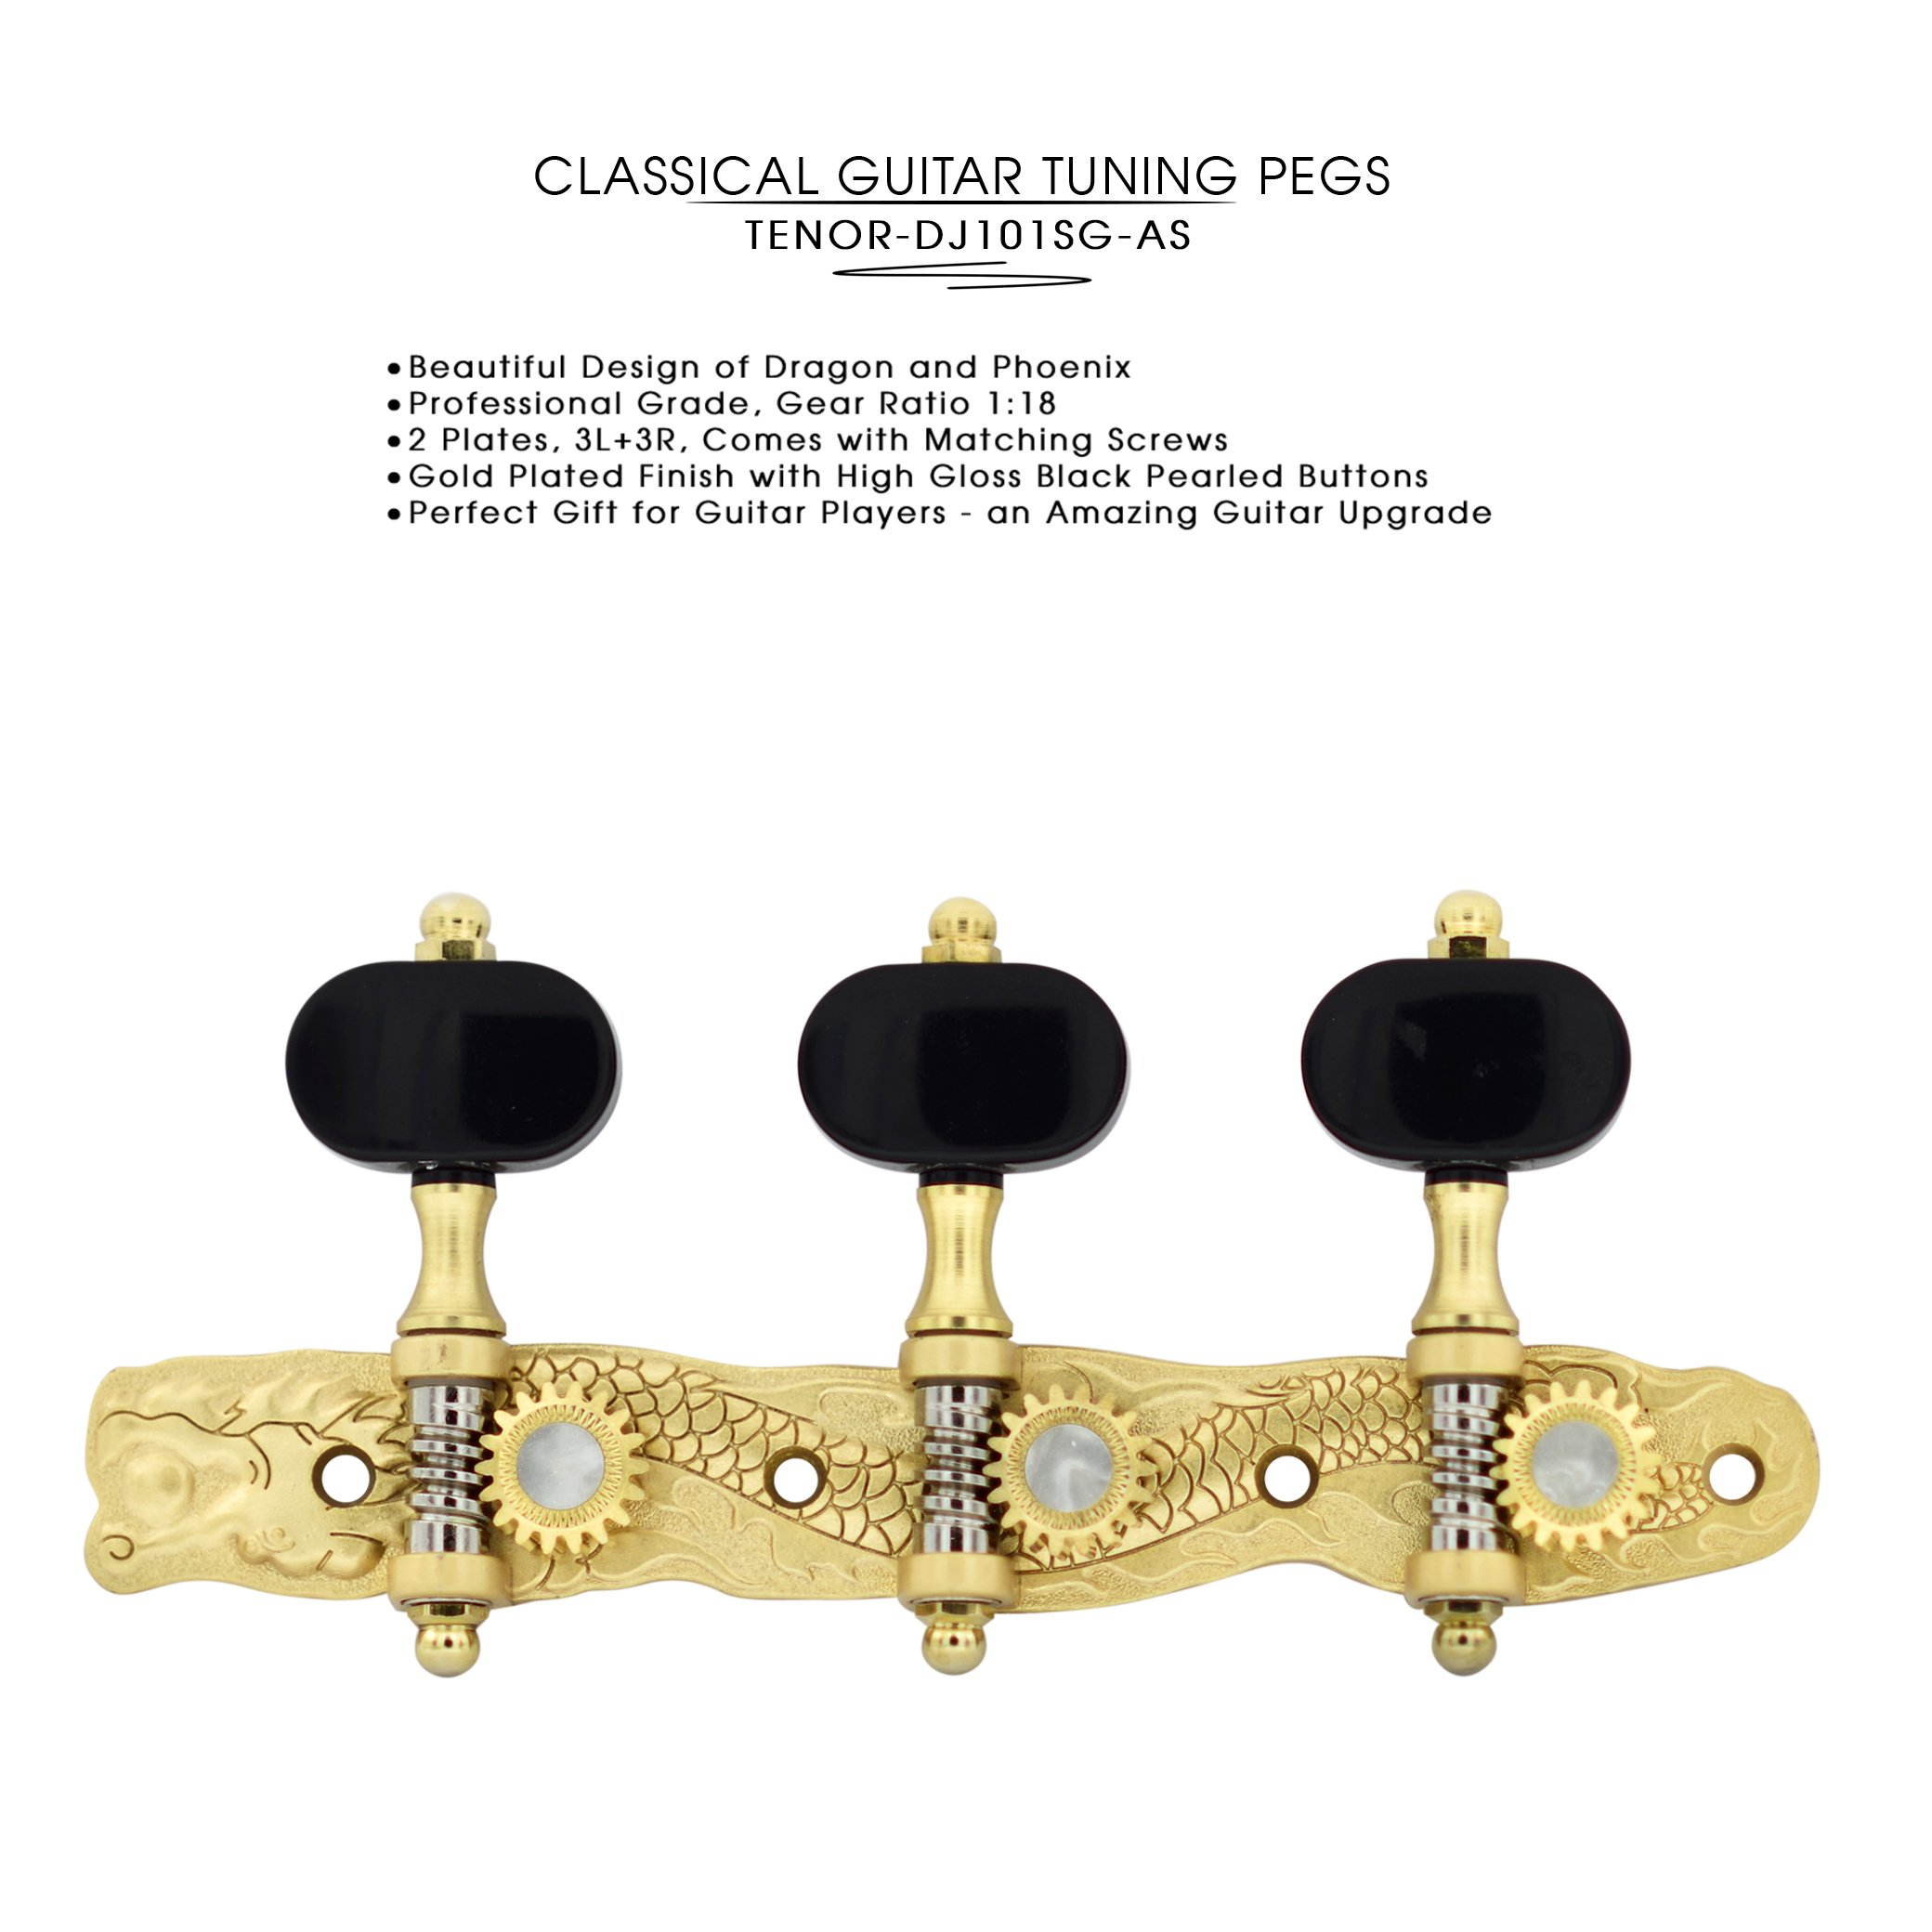 DJ101SG-AS TENOR Classical Guitar Tuners ''Dragon and Phoenix'' Professional Tuning Key Pegs/Machine Heads for Classical or Flamenco Guitar.